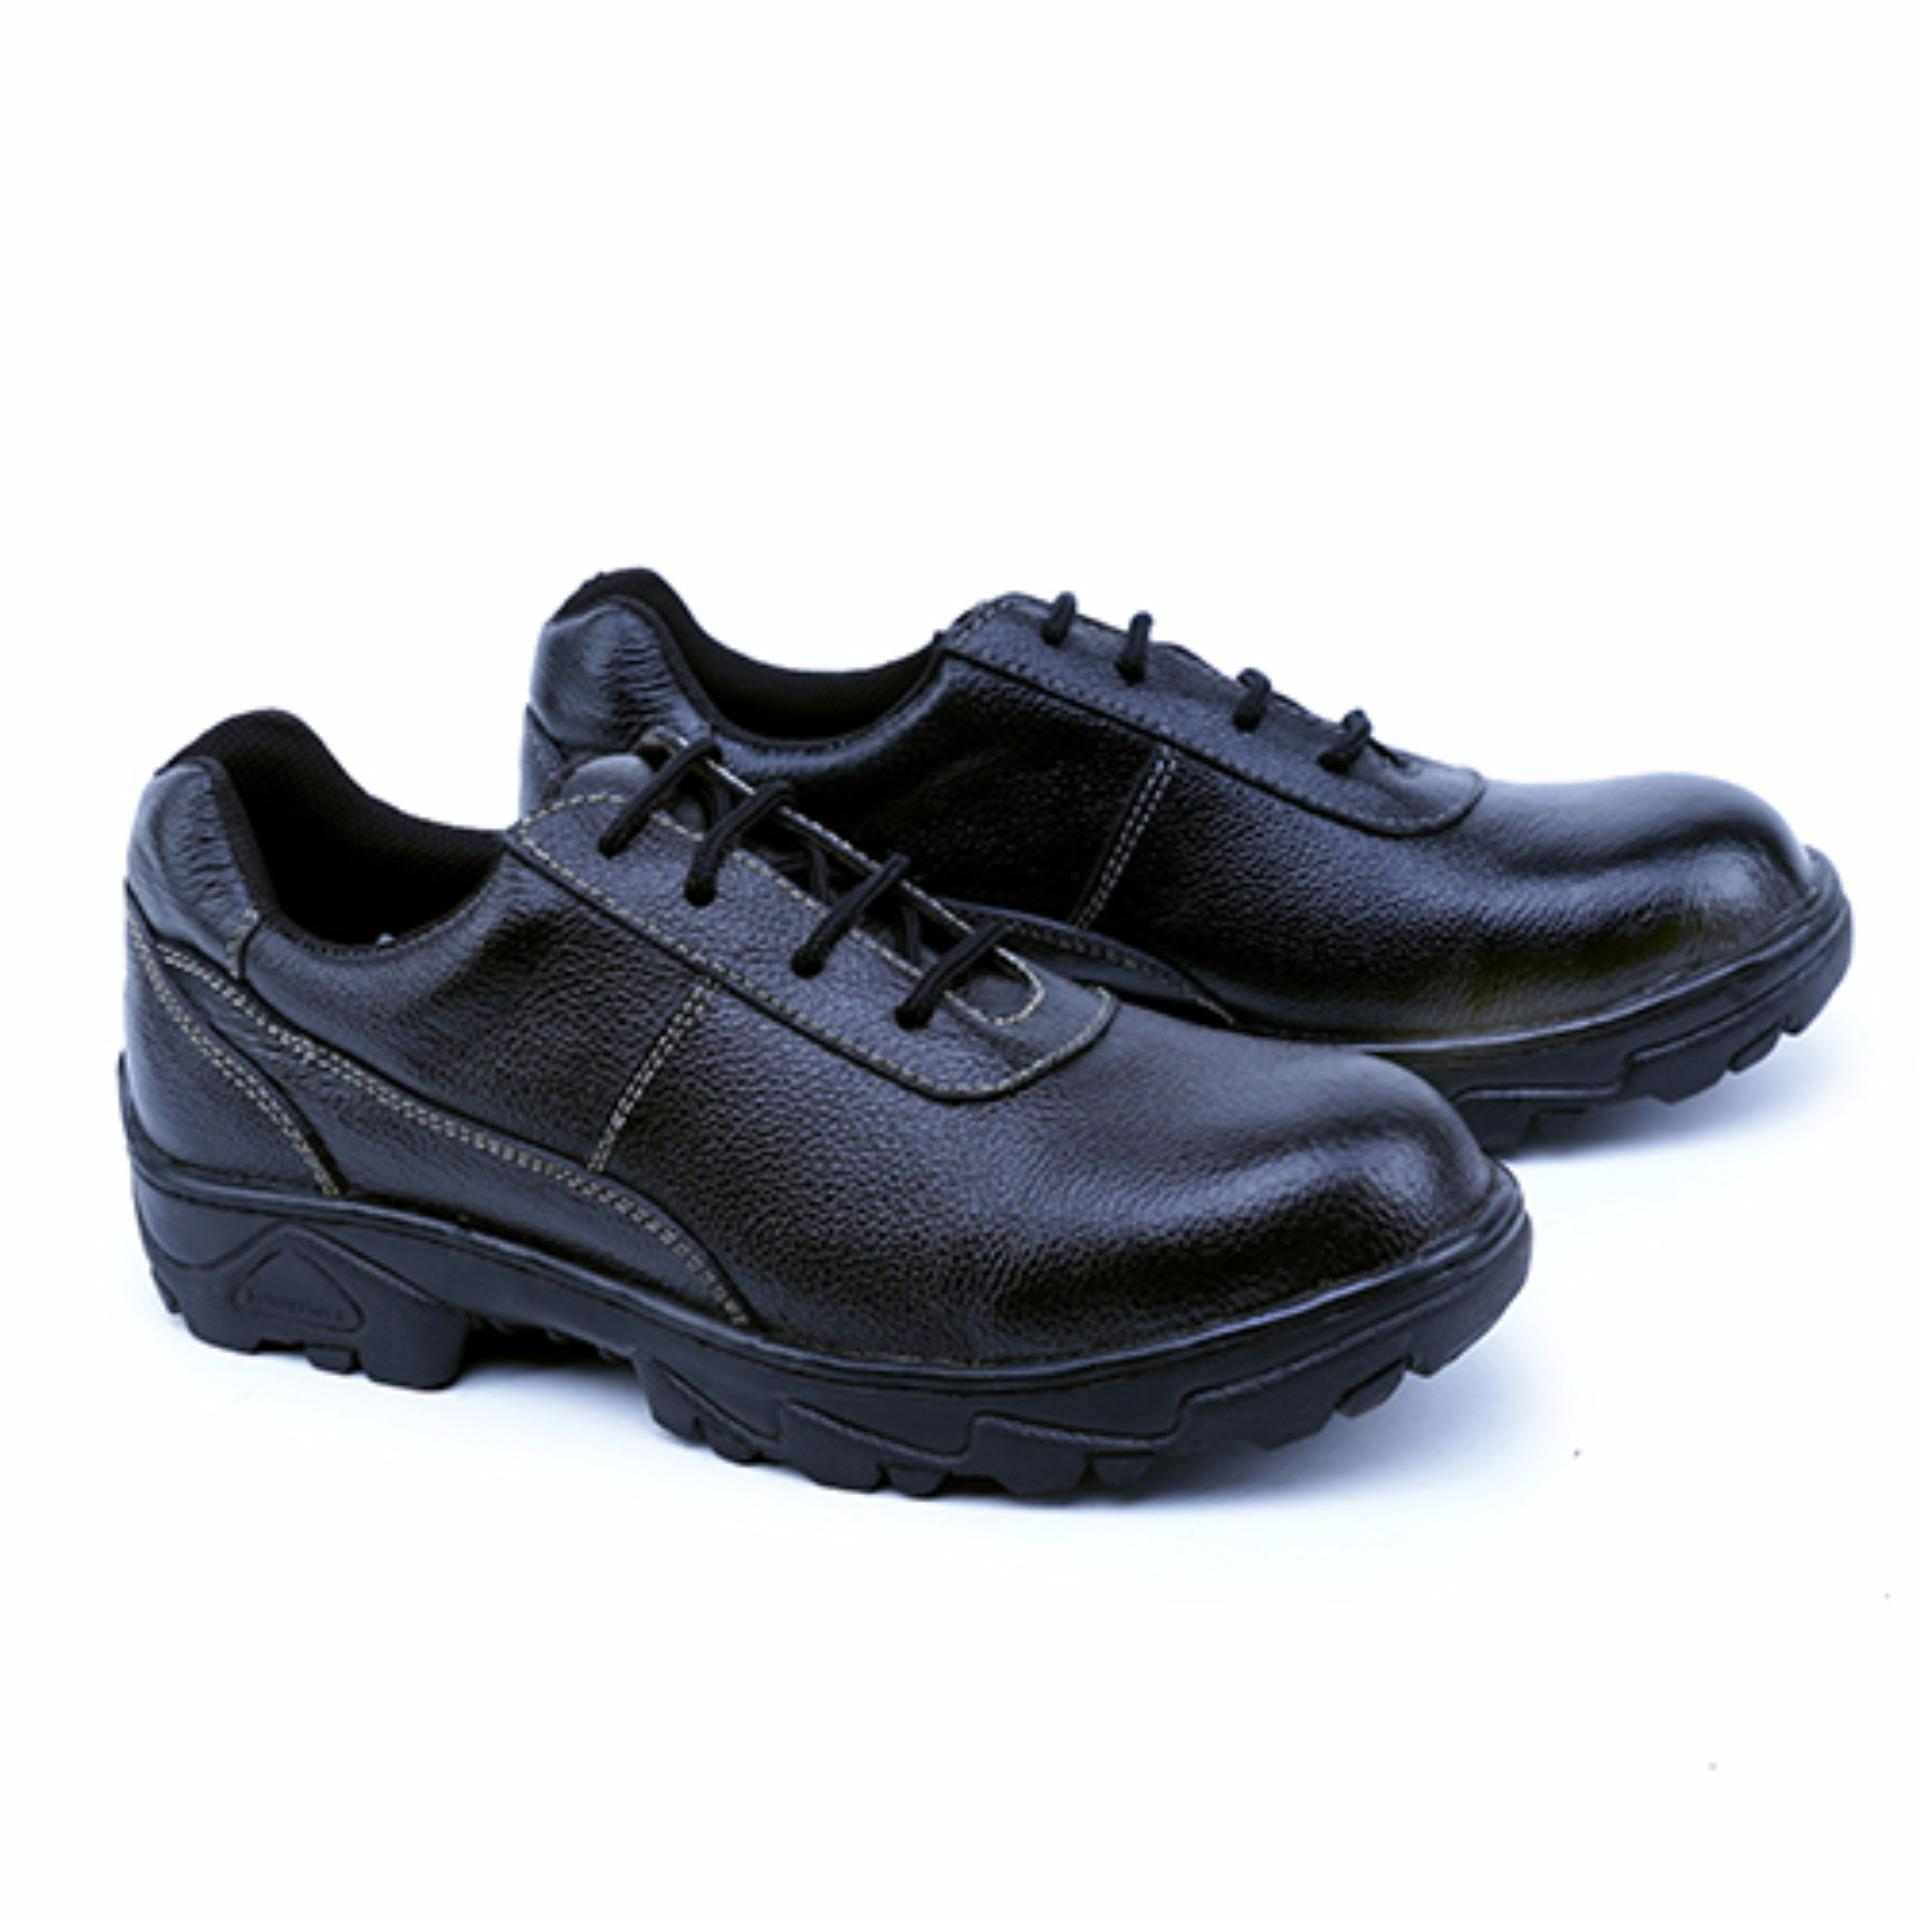 Garsel Sepatu Boots & Safety / Safety Shoes Pria GRN 2504 Bahan Premium Leather